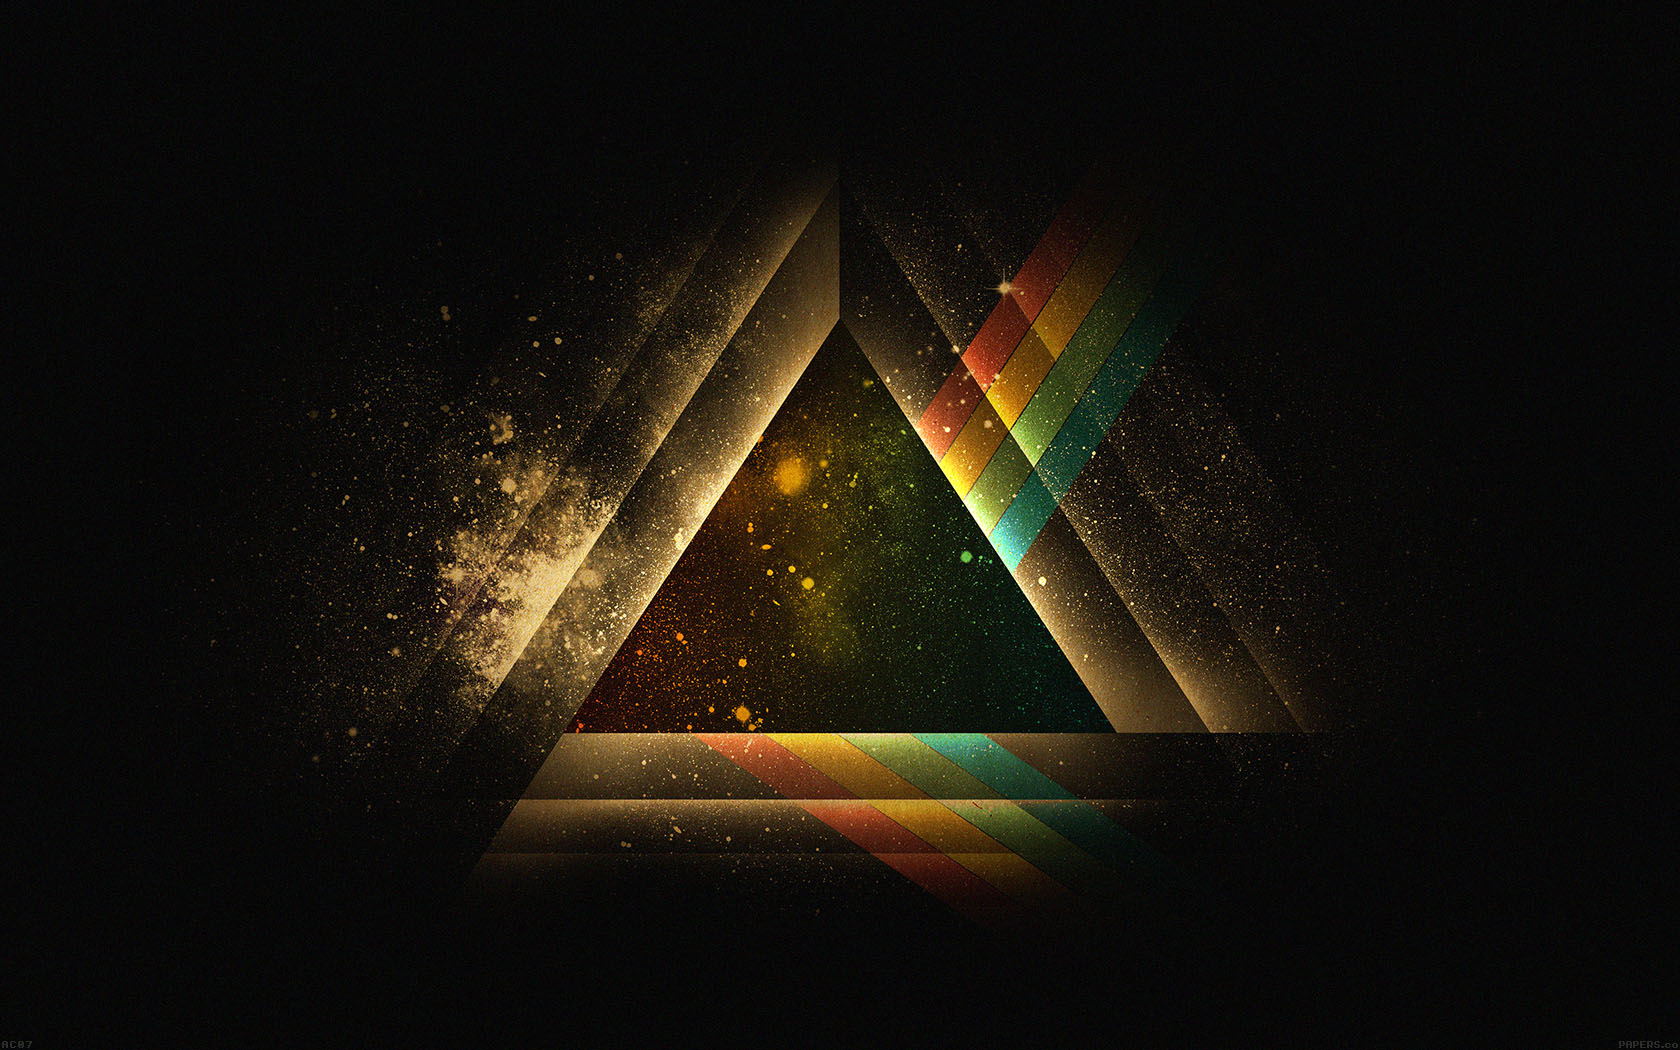 Ac07 wallpaper triangle art rainbow illust graphic for The wallpaper company